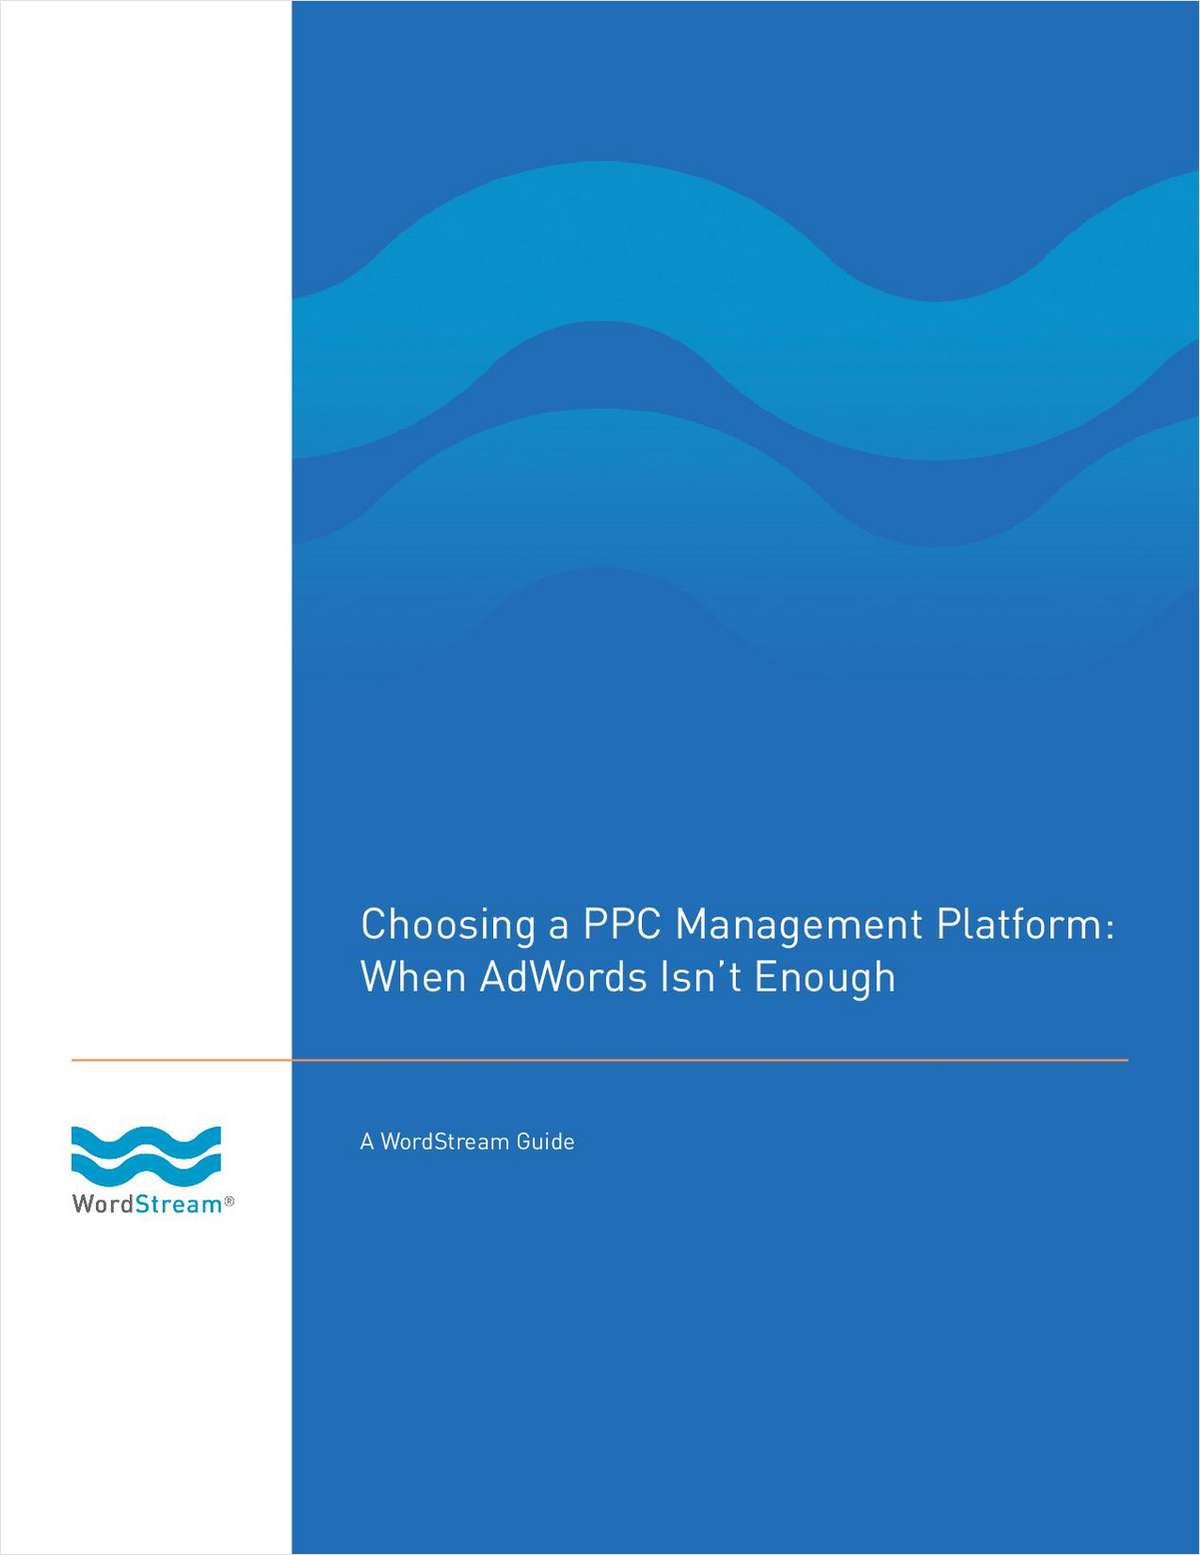 Buyer's Guide & Checklist: When AdWords Isn't Enough - Why & How To Choose PPC Software